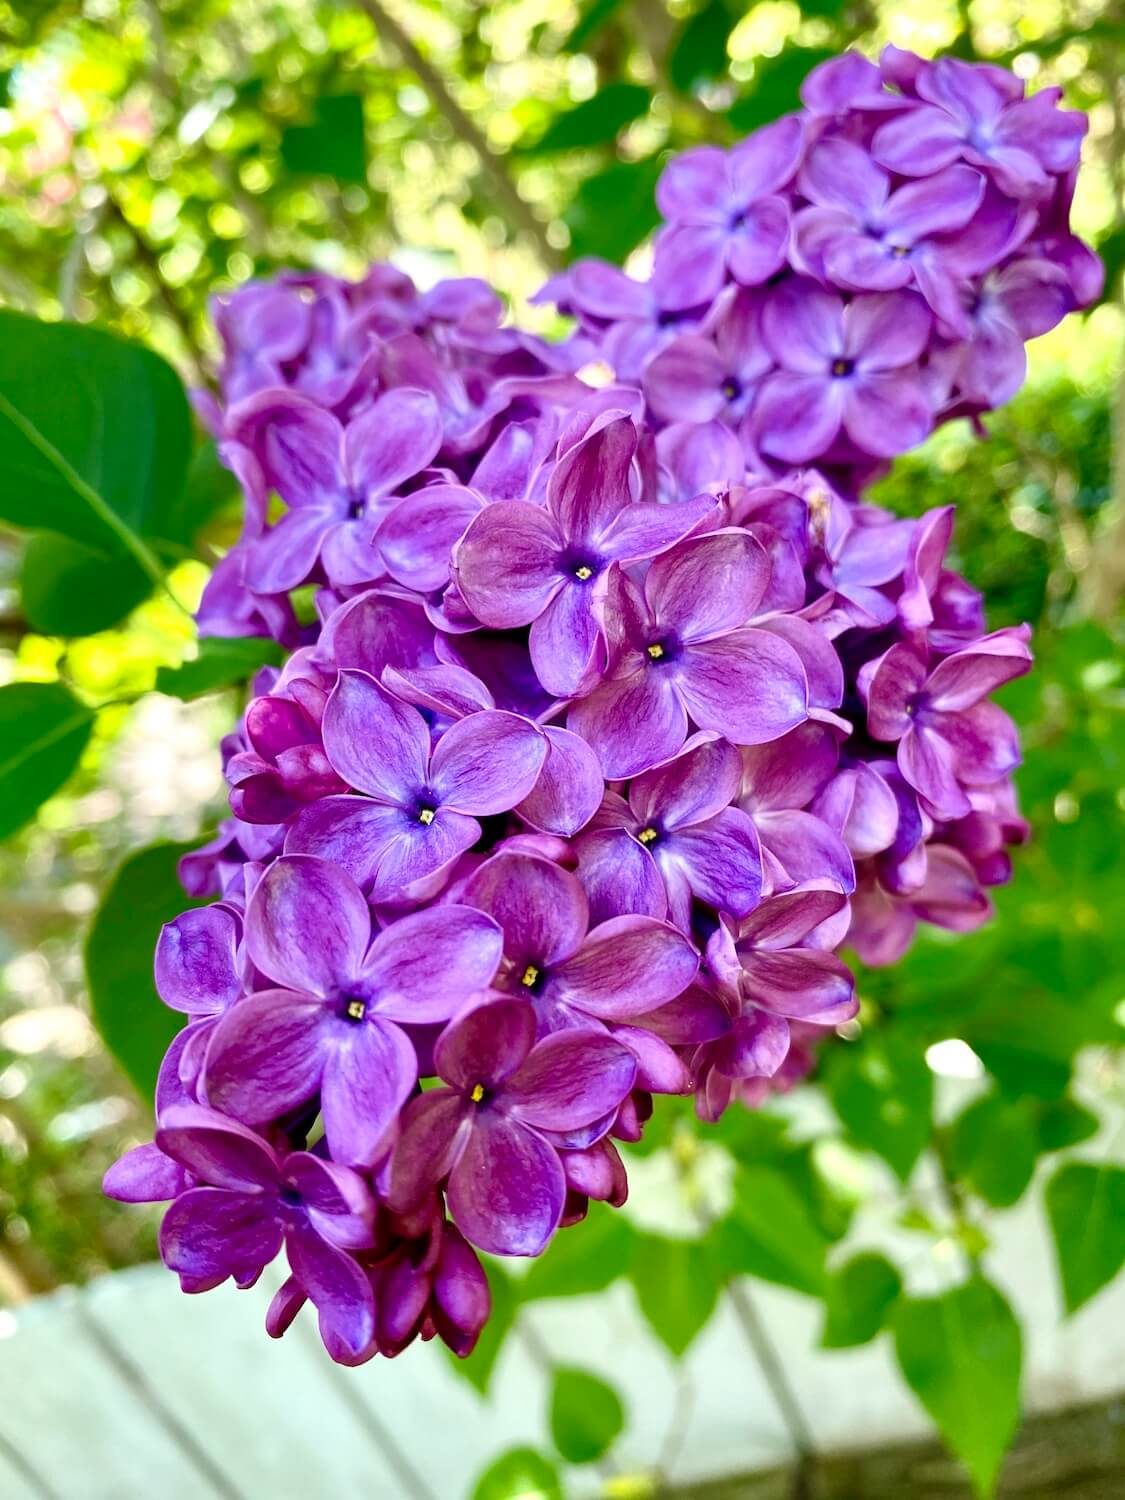 Vibrant purple lilac flowers open up against the blurred backdrop of lime green leaves, creating an impressive Spring collage of color in a Seattle neighborhood.